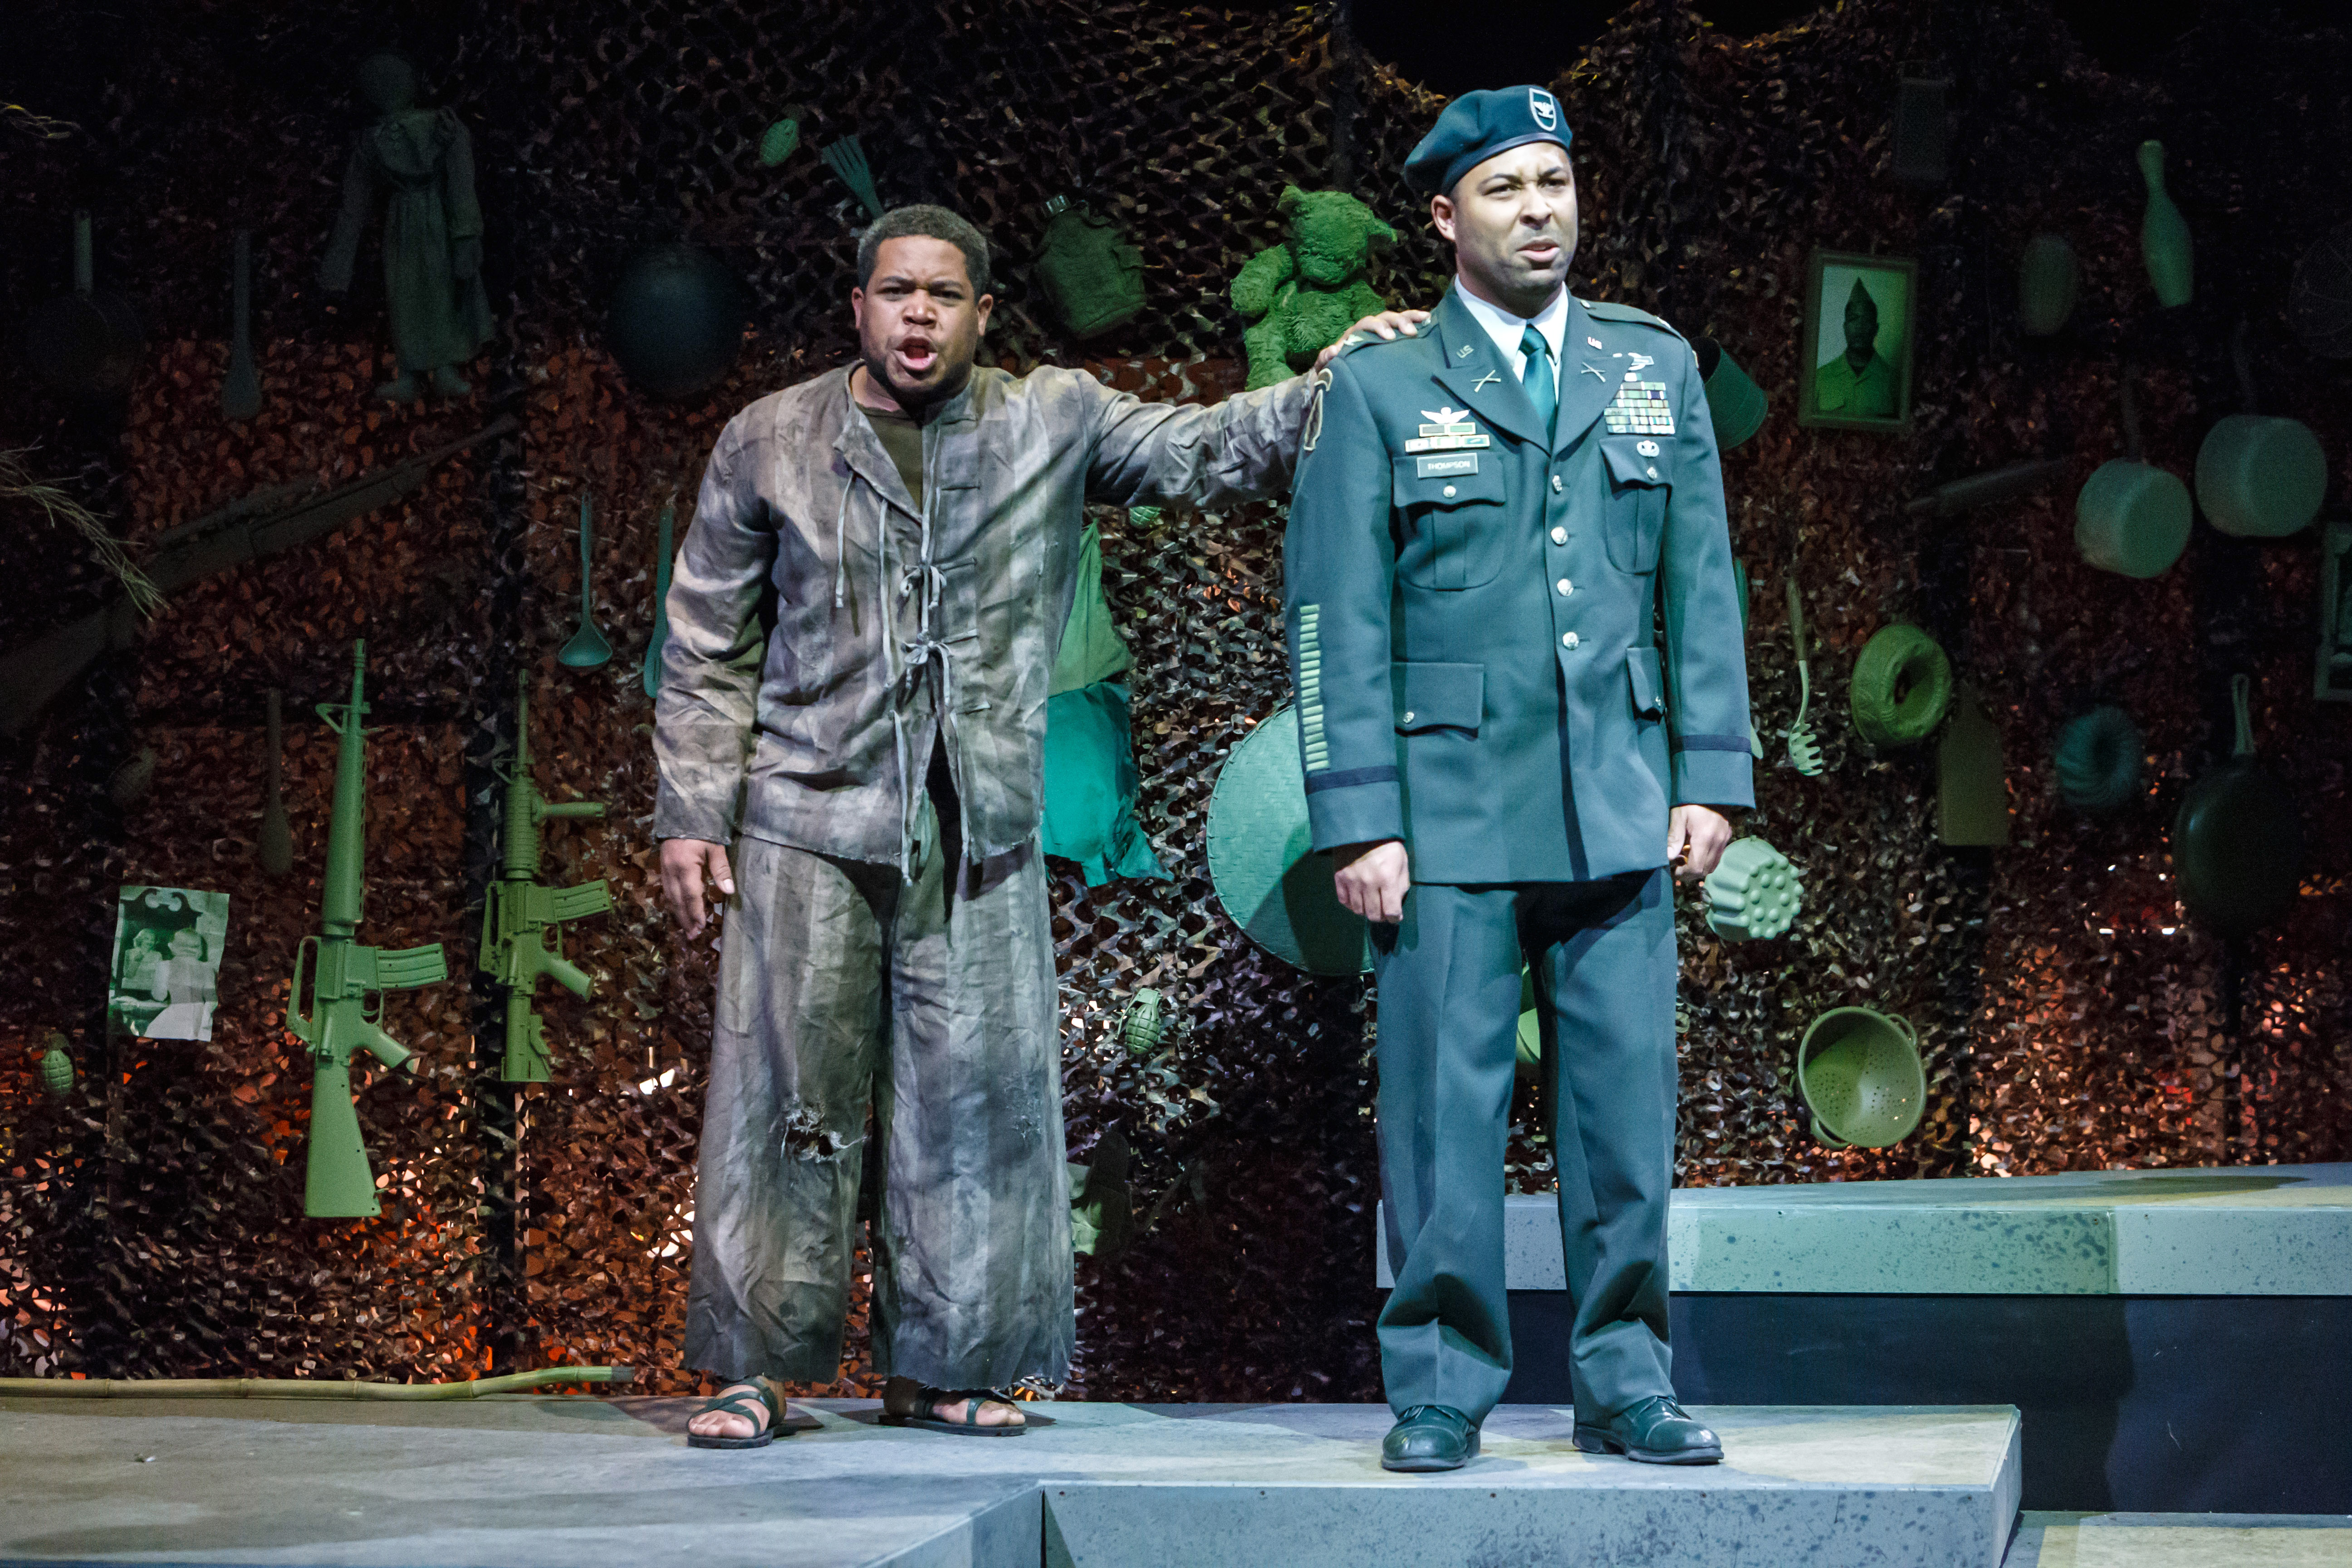 They're both Col. Jim Thompson, but in 'Glory Denied' at Pittsburgh Opera, the specter of the younger Thompson—a POW for nine years—haunts the decorated postwar vet. Singers are tenor Terrence Chin-Loy (L) and baritone Benjamin Taylor. (photo: David Bachman Photography)